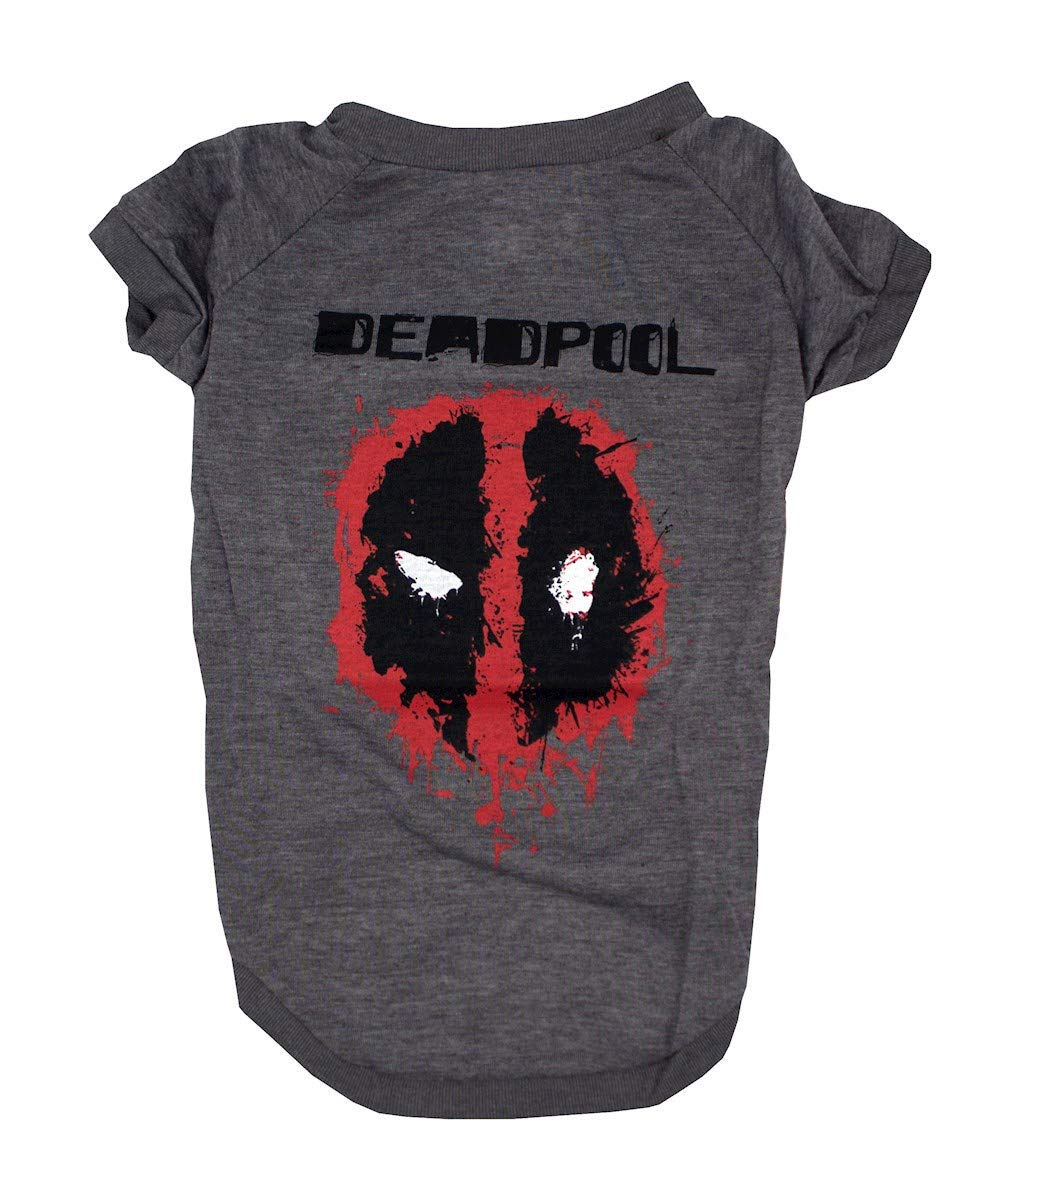 Deadpool Tee For Dogs | Marvel Comics Deadpool Logo T-Shirt for All Dogs | Dog T Shirt Available in Multiple Sizes and Styles, Comfortable and Soft Pet Clothes